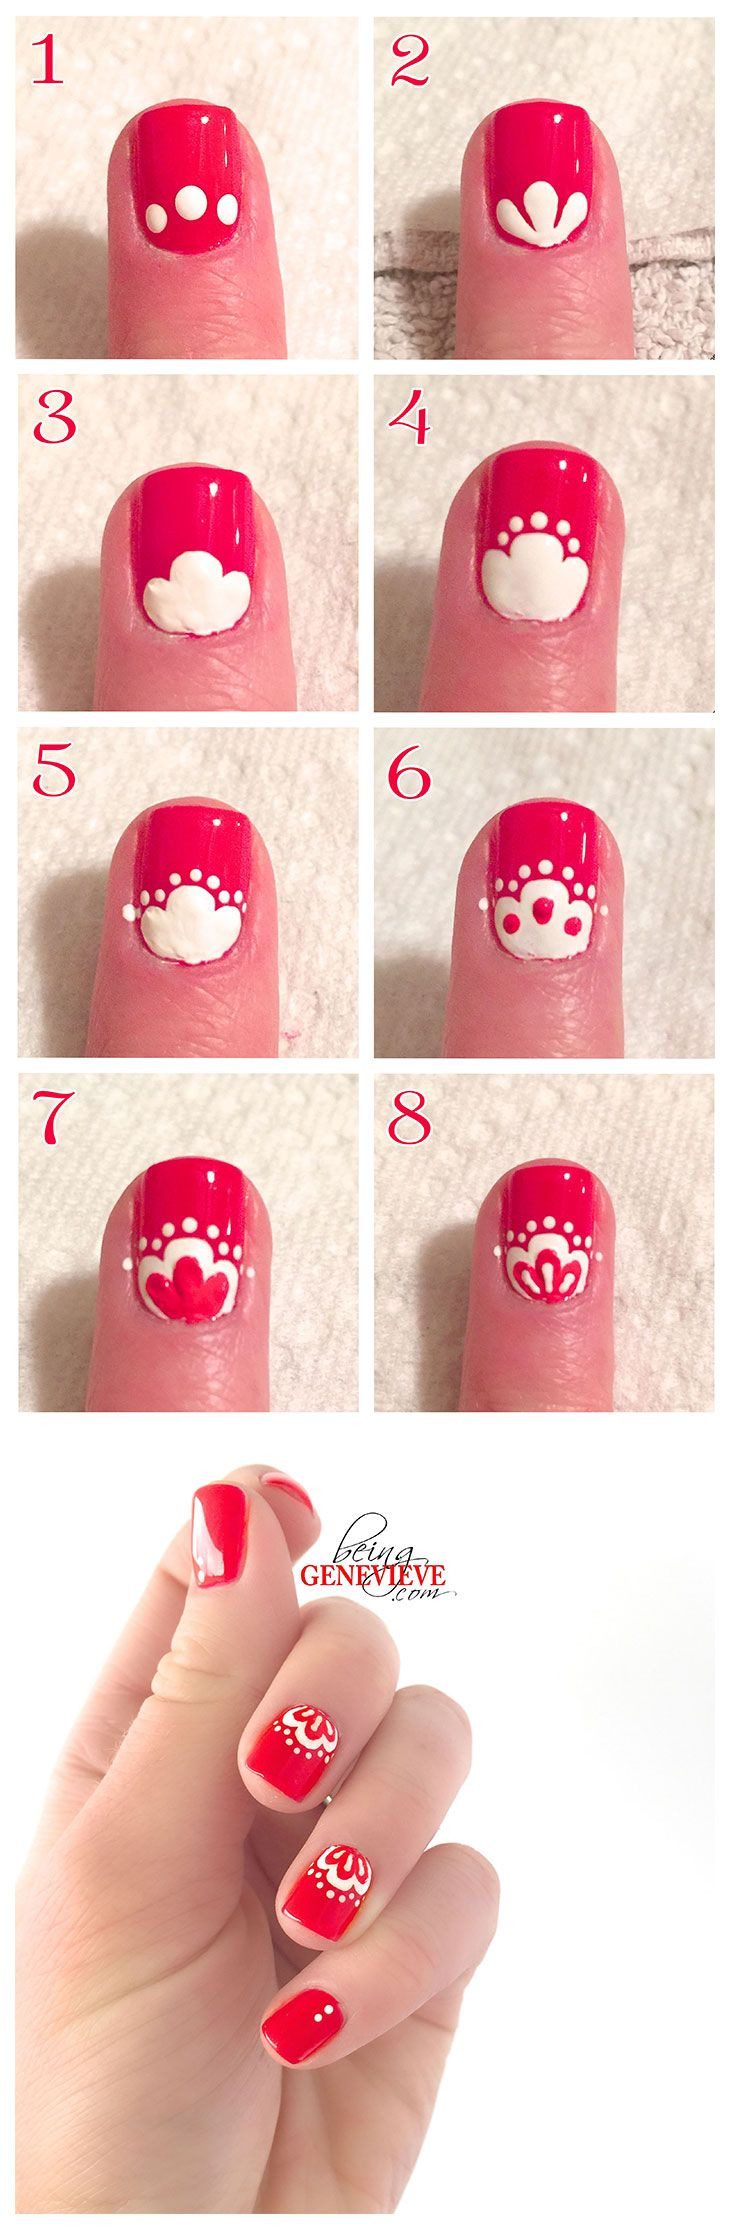 Nail art designs besides red nail art designs on top nail art images - Best 25 Lace Nails Ideas On Pinterest Pink Nail Designs Lace Nail Design And Lace Nail Art